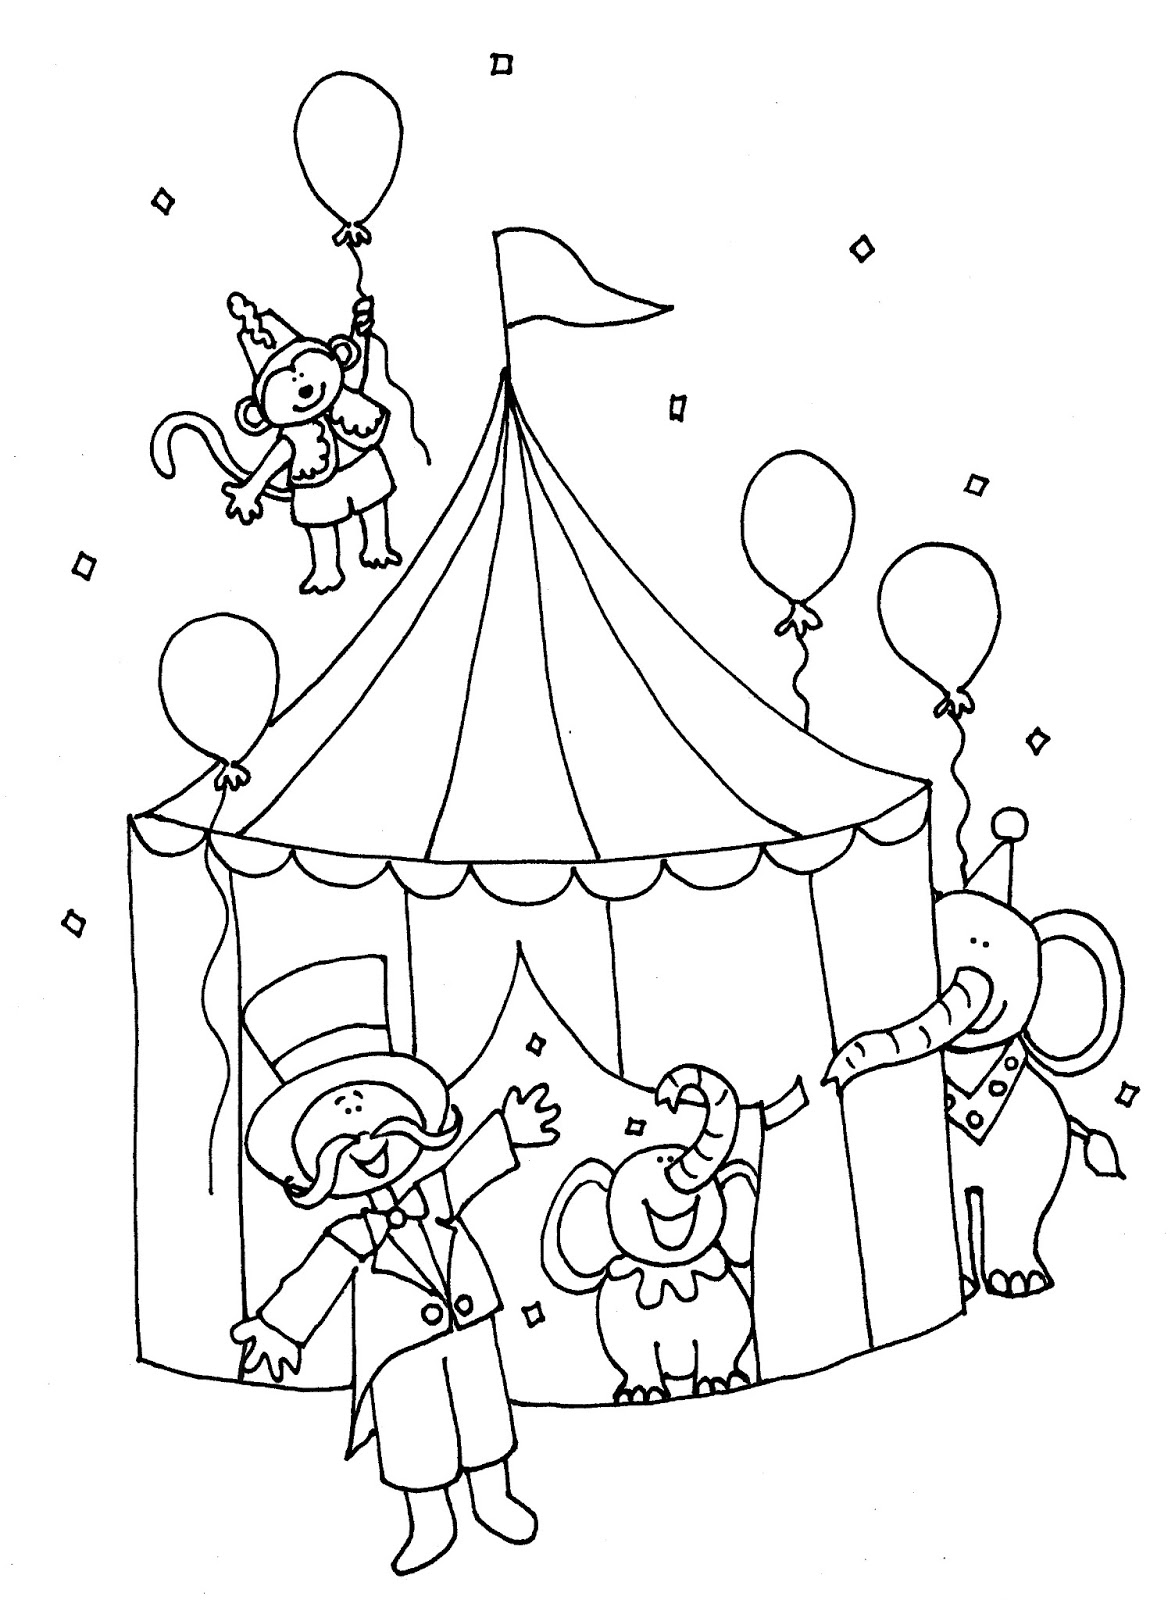 Printable Circus Coloring Pages Coloring Me Circus Coloring Pages